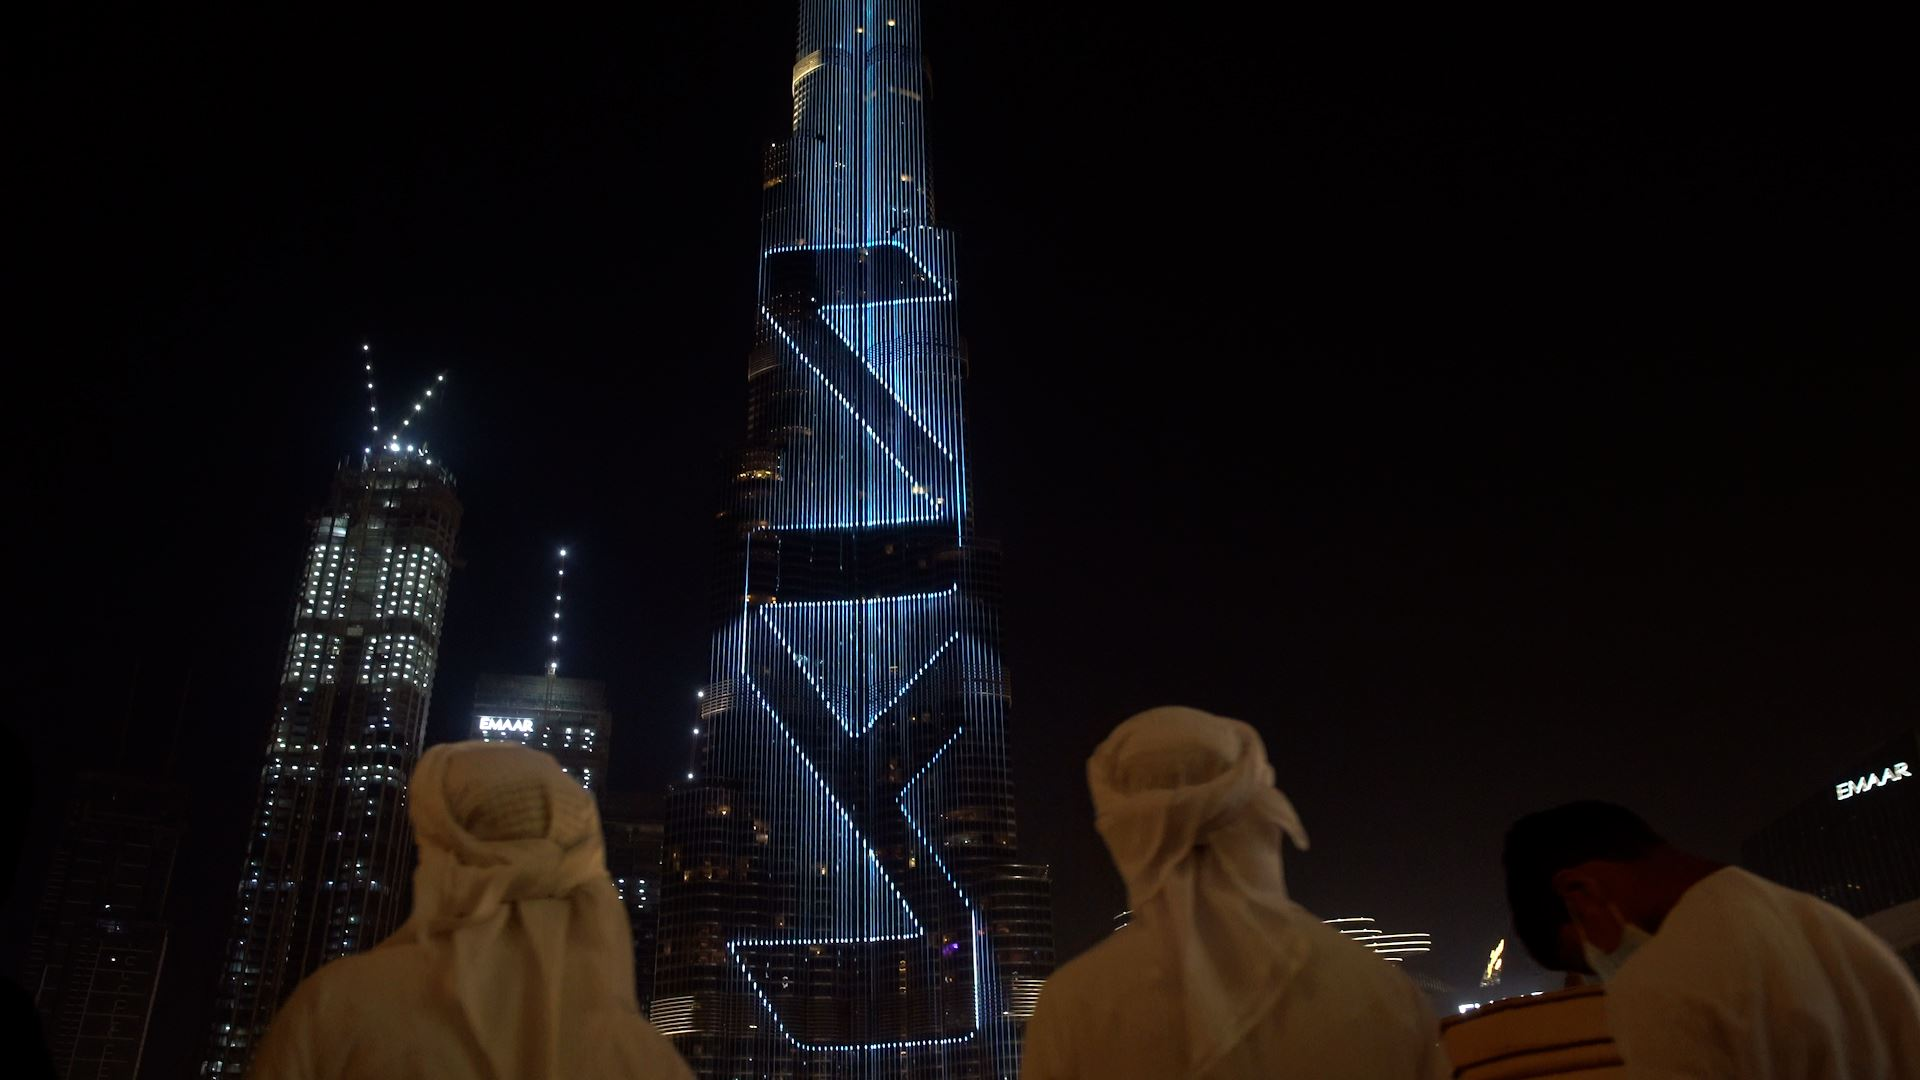 Kia celebrates its brand transformation in the Middle East with spectacular LED show - Image 1